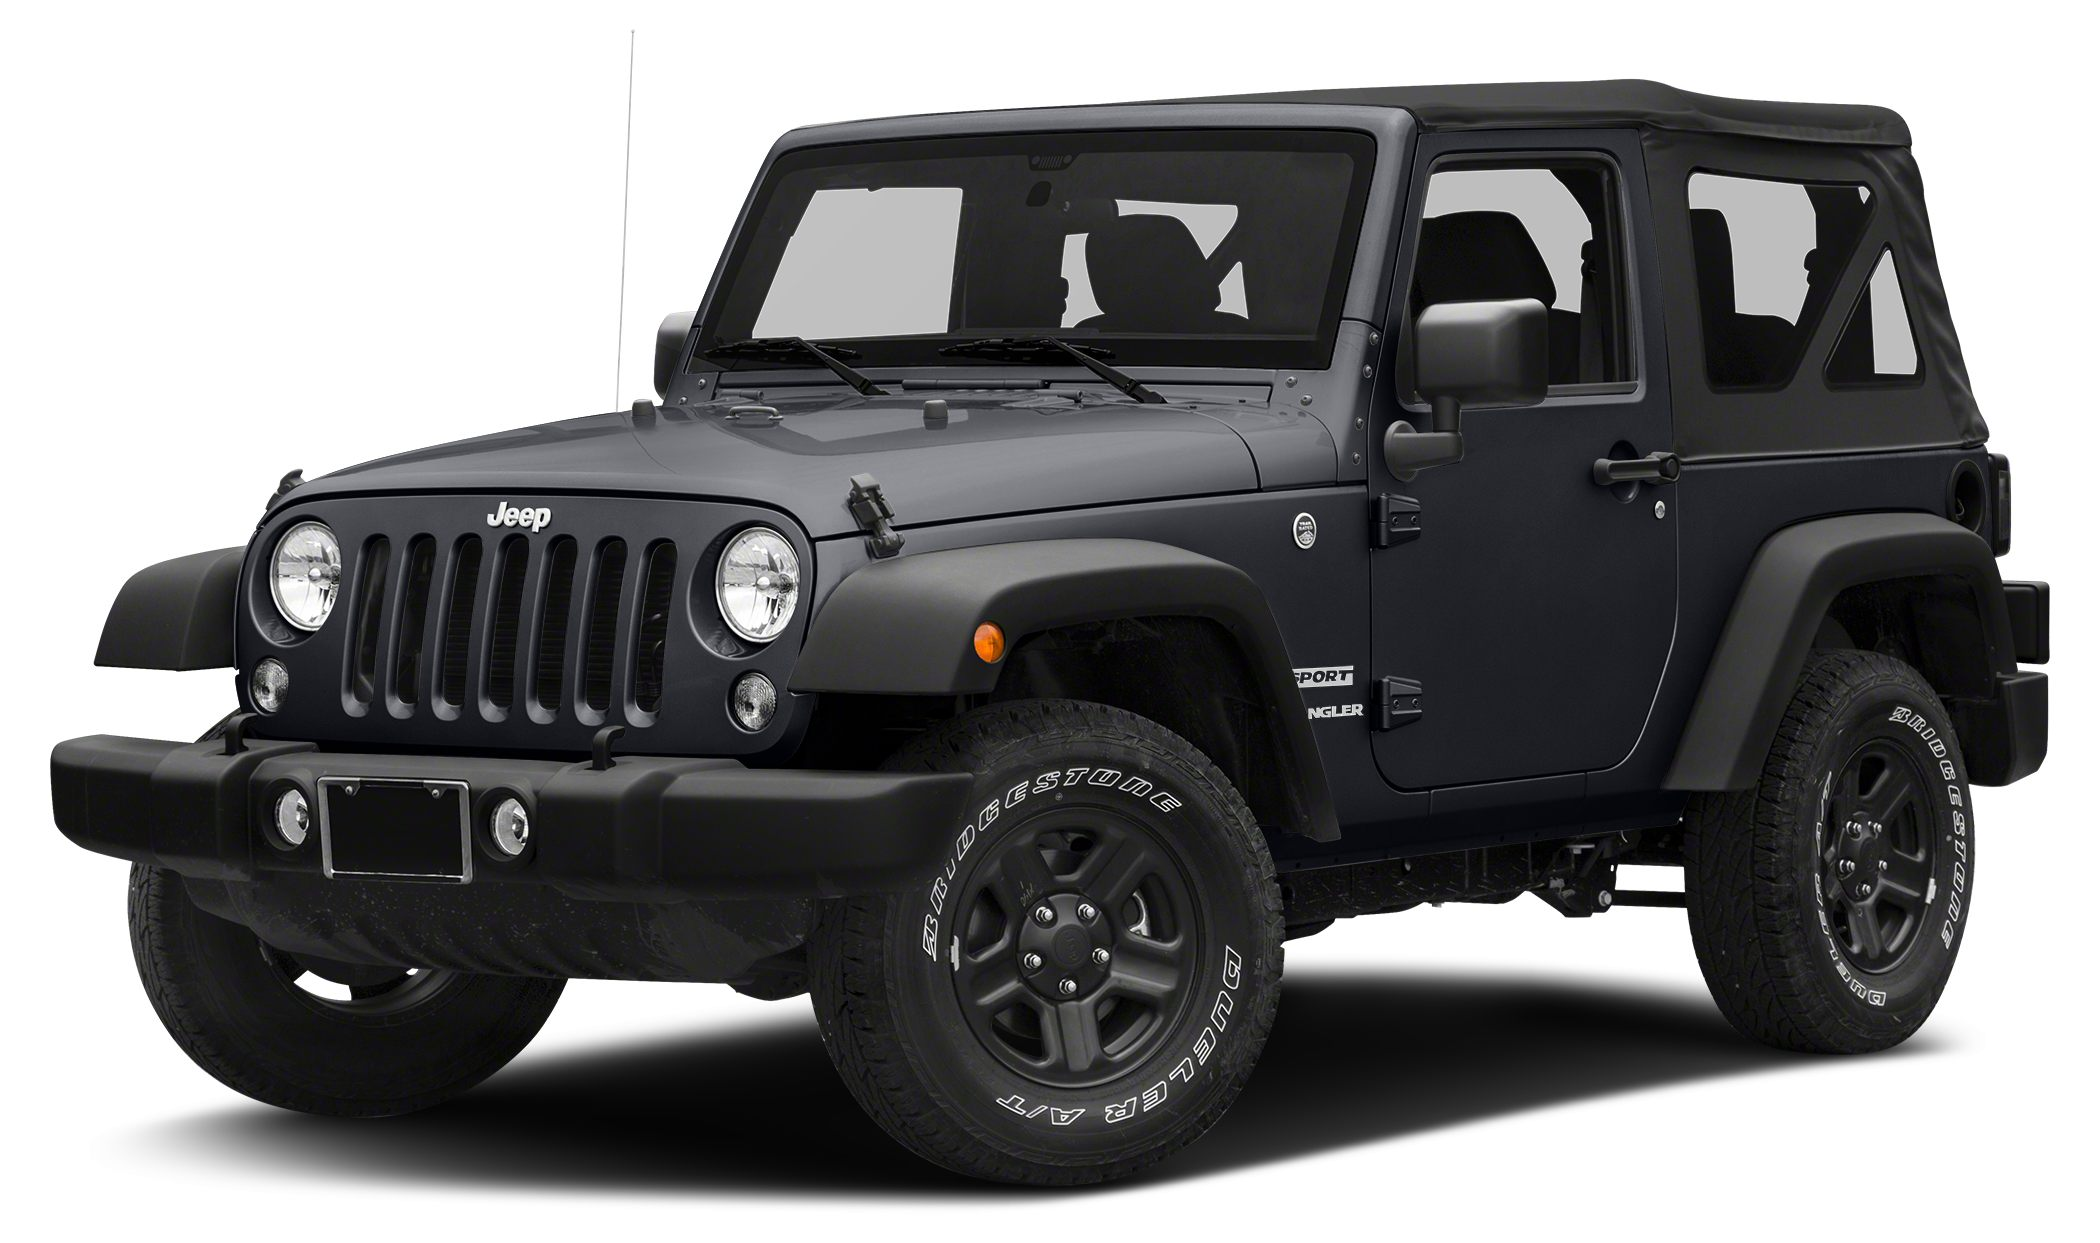 2017 Jeep Wrangler Sport The Our Cost Price reflects all applicable manufacturer rebates and priva